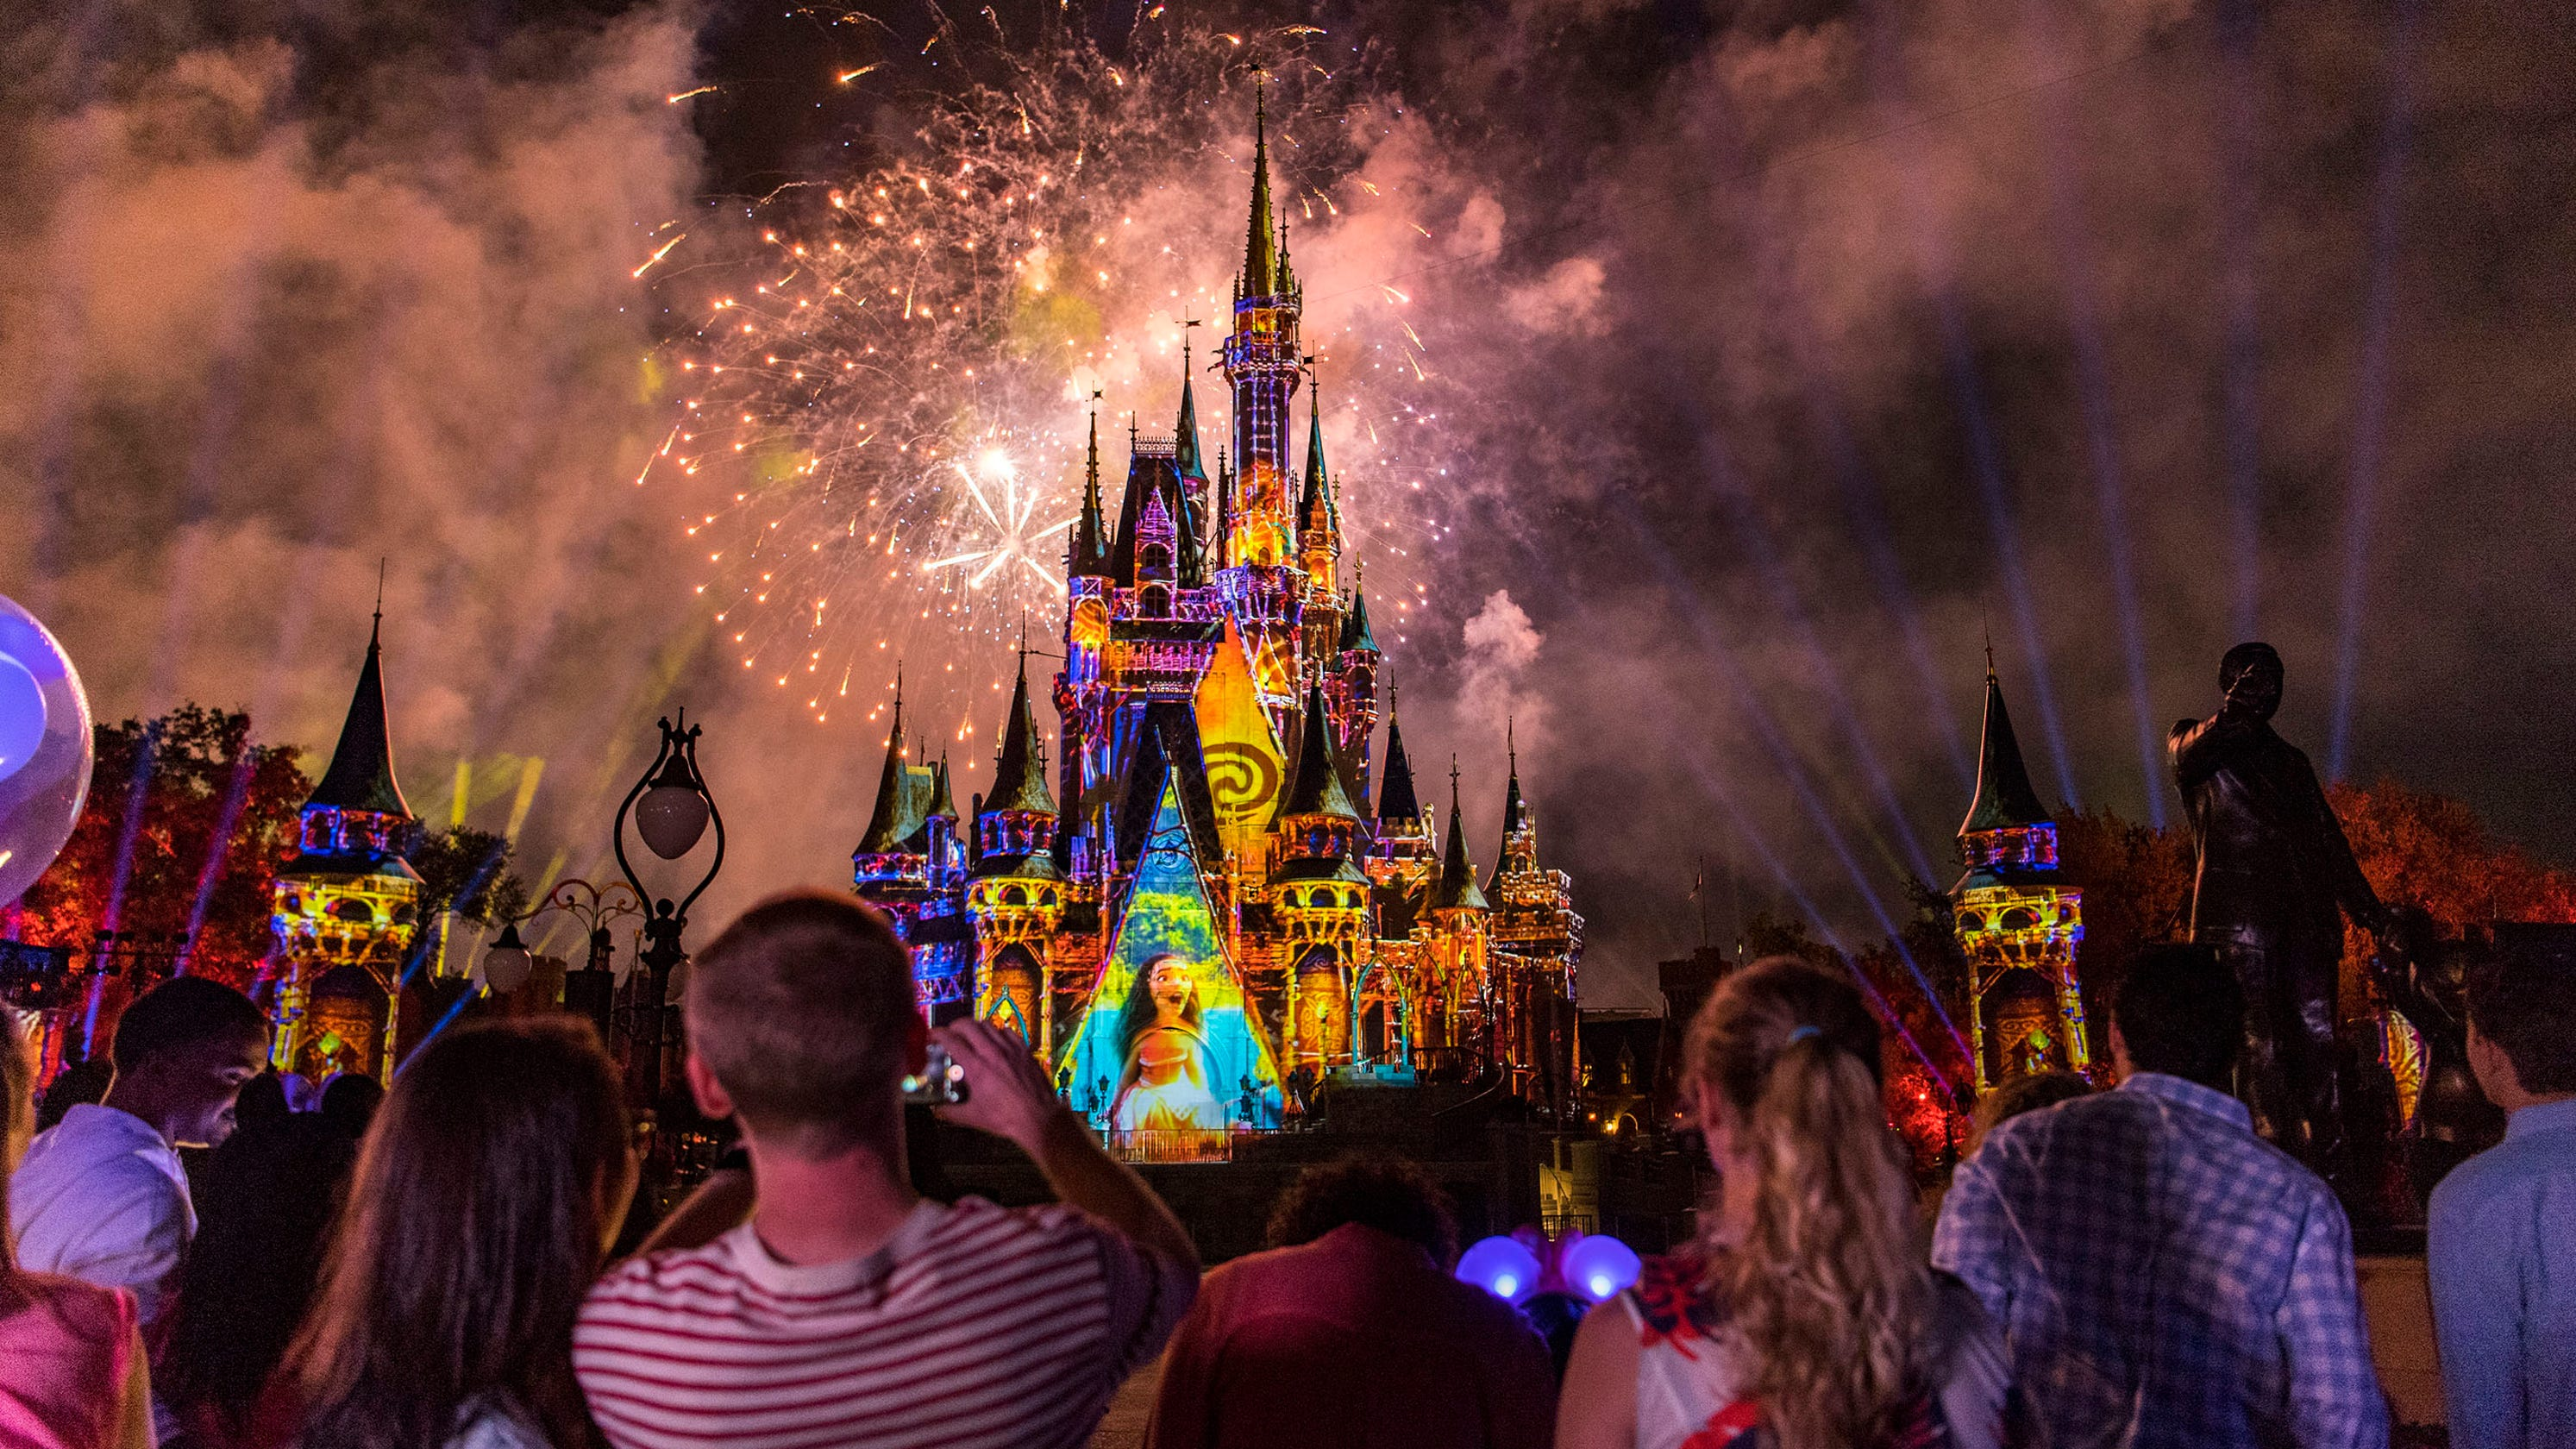 Disney world tickets flexible pricing for orlando theme parks in disney world tickets flexible pricing for orlando theme parks in october publicscrutiny Image collections